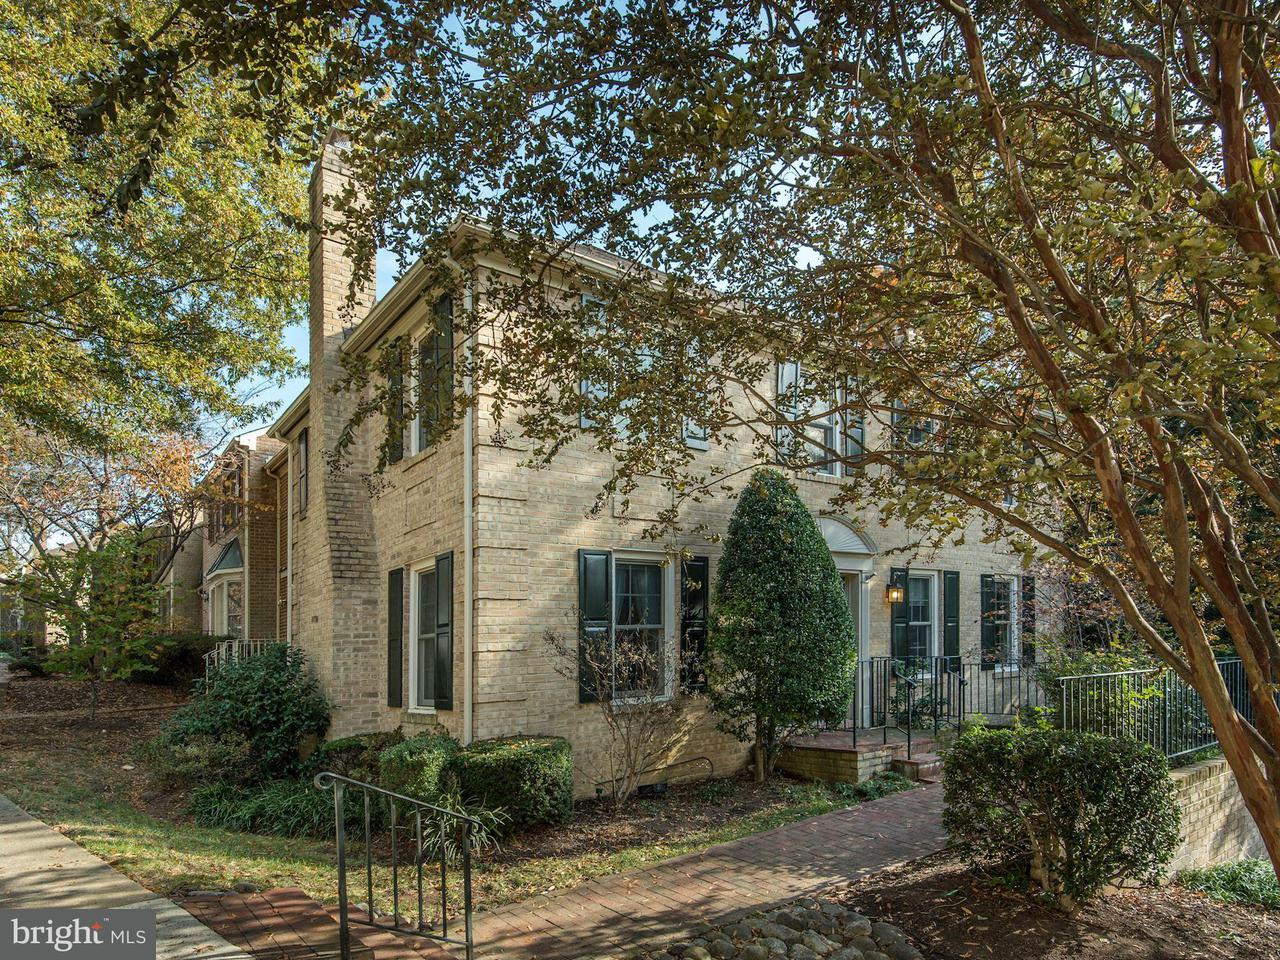 Townhouse for Sale at 4628 4TH RD N 4628 4TH RD N Arlington, Virginia 22203 United States